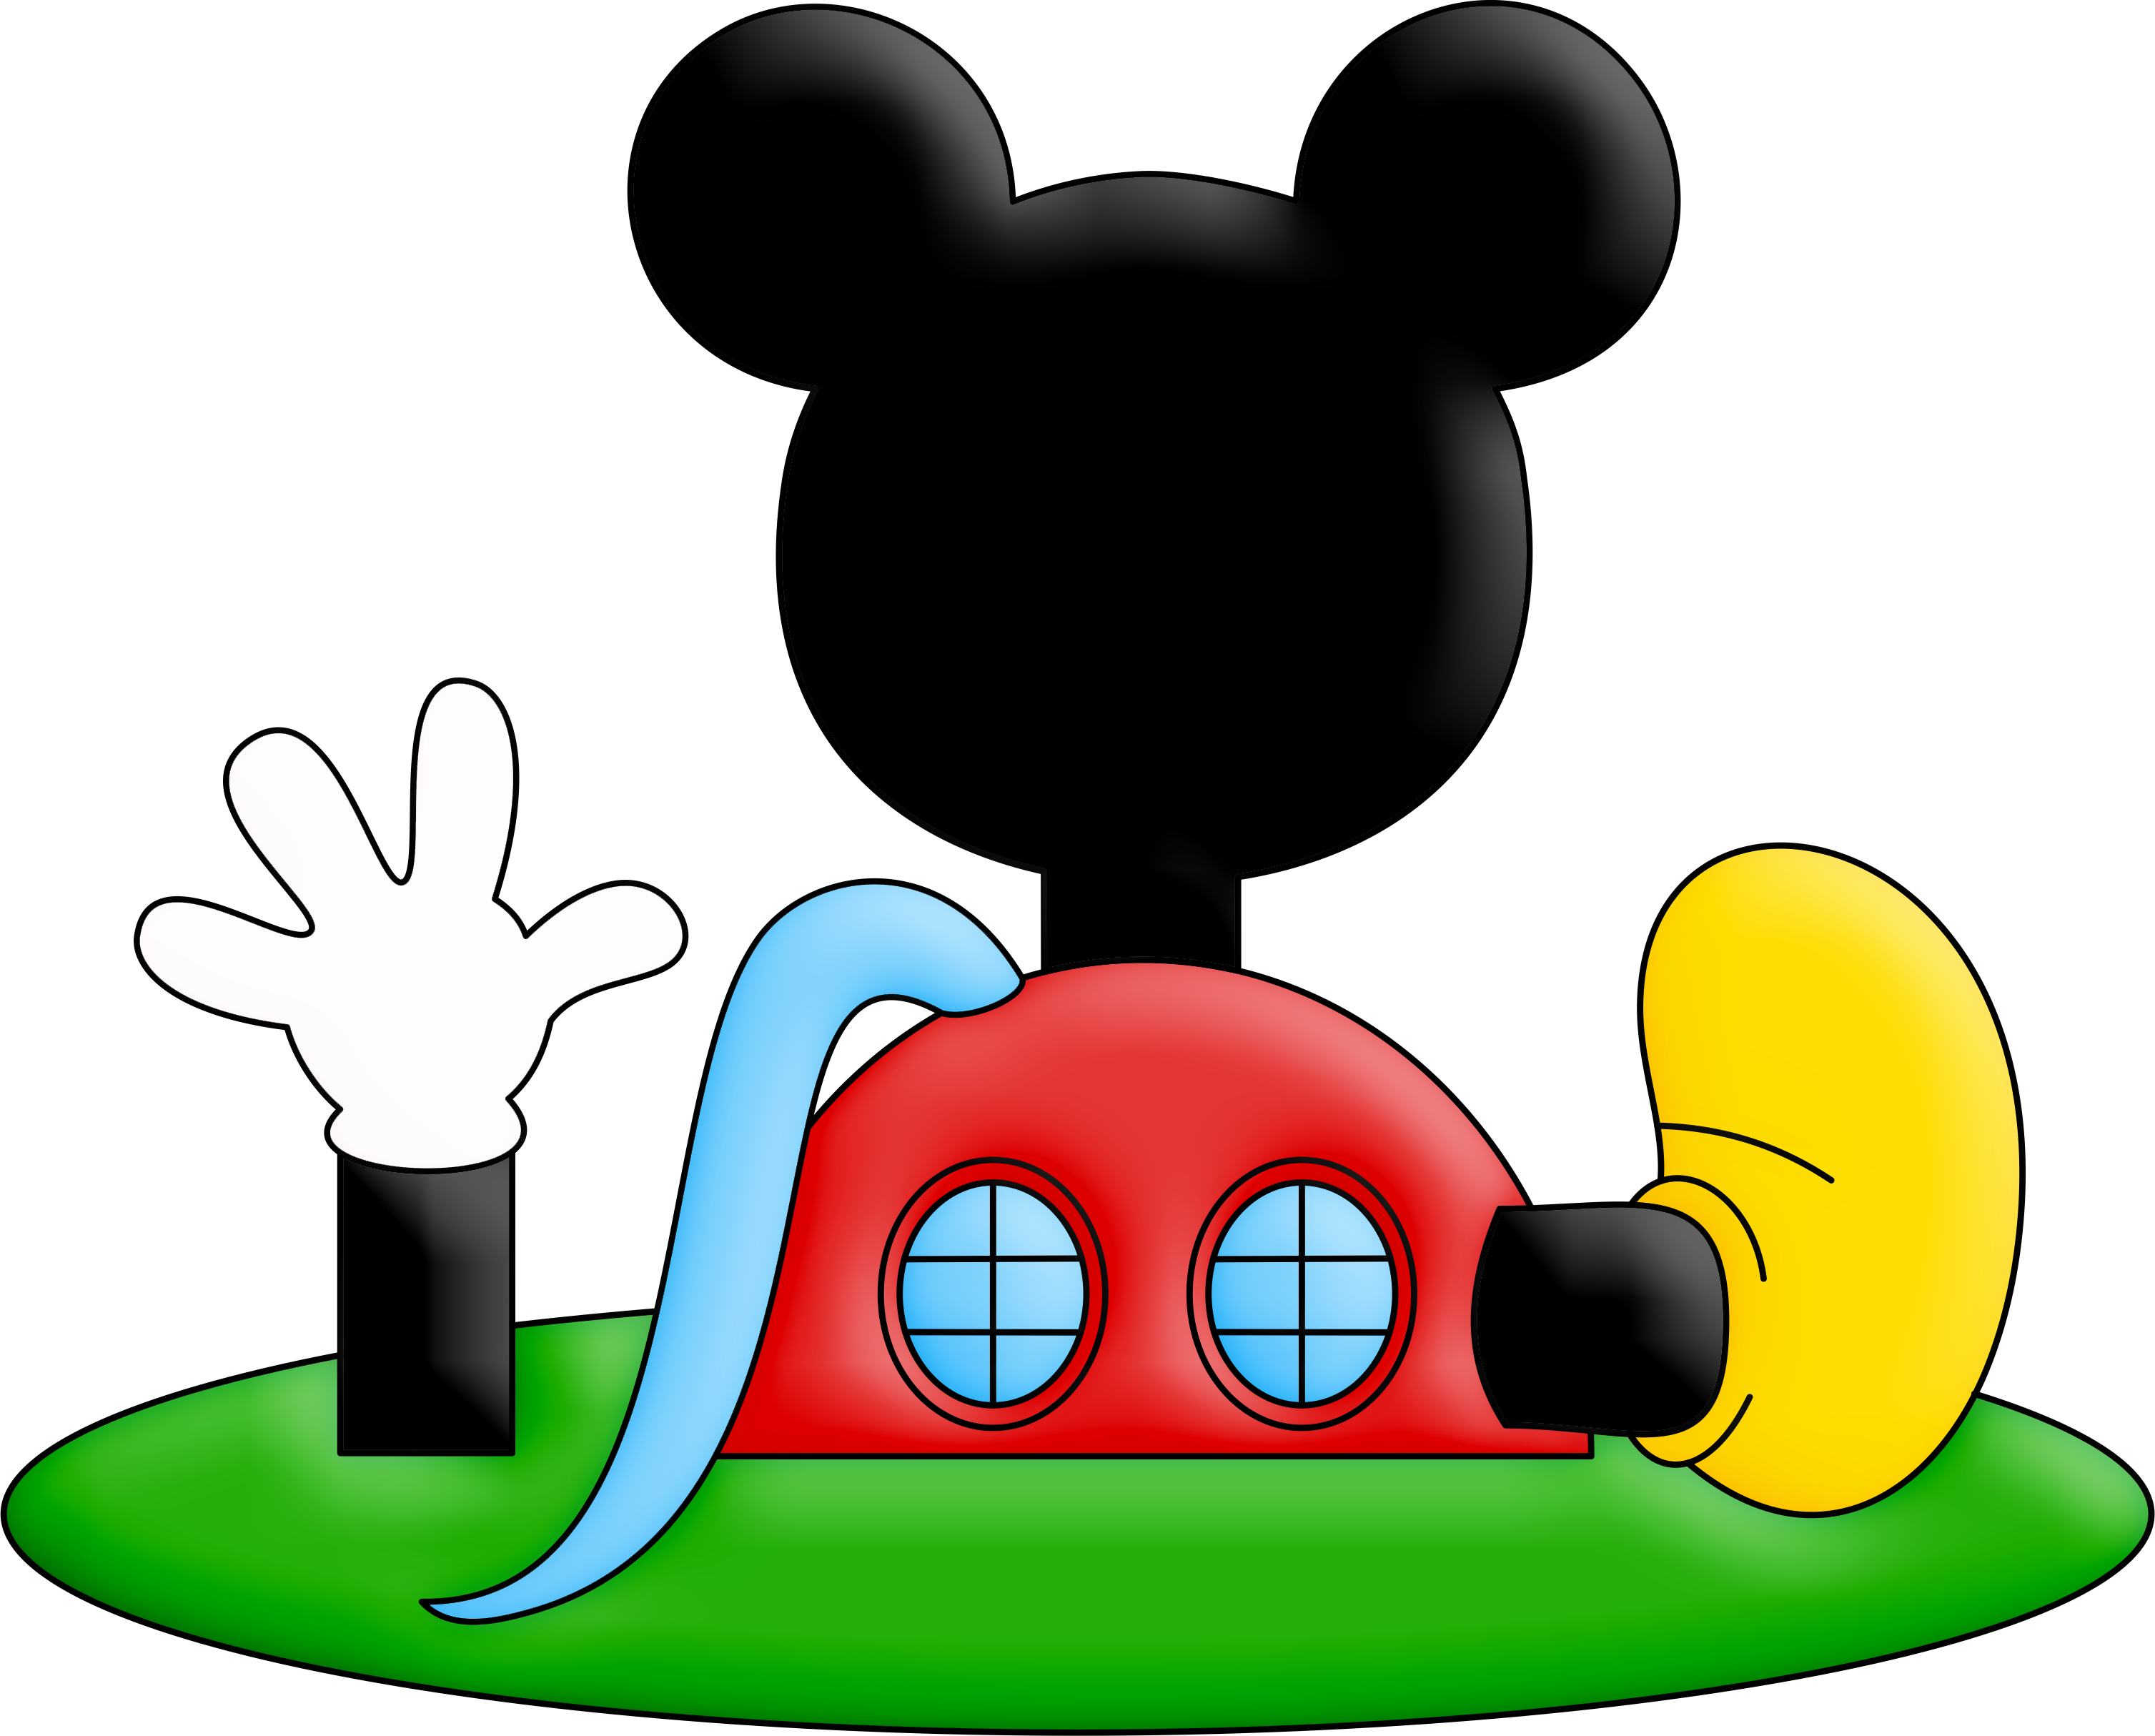 Mickey mouse 2 png. Casa do image